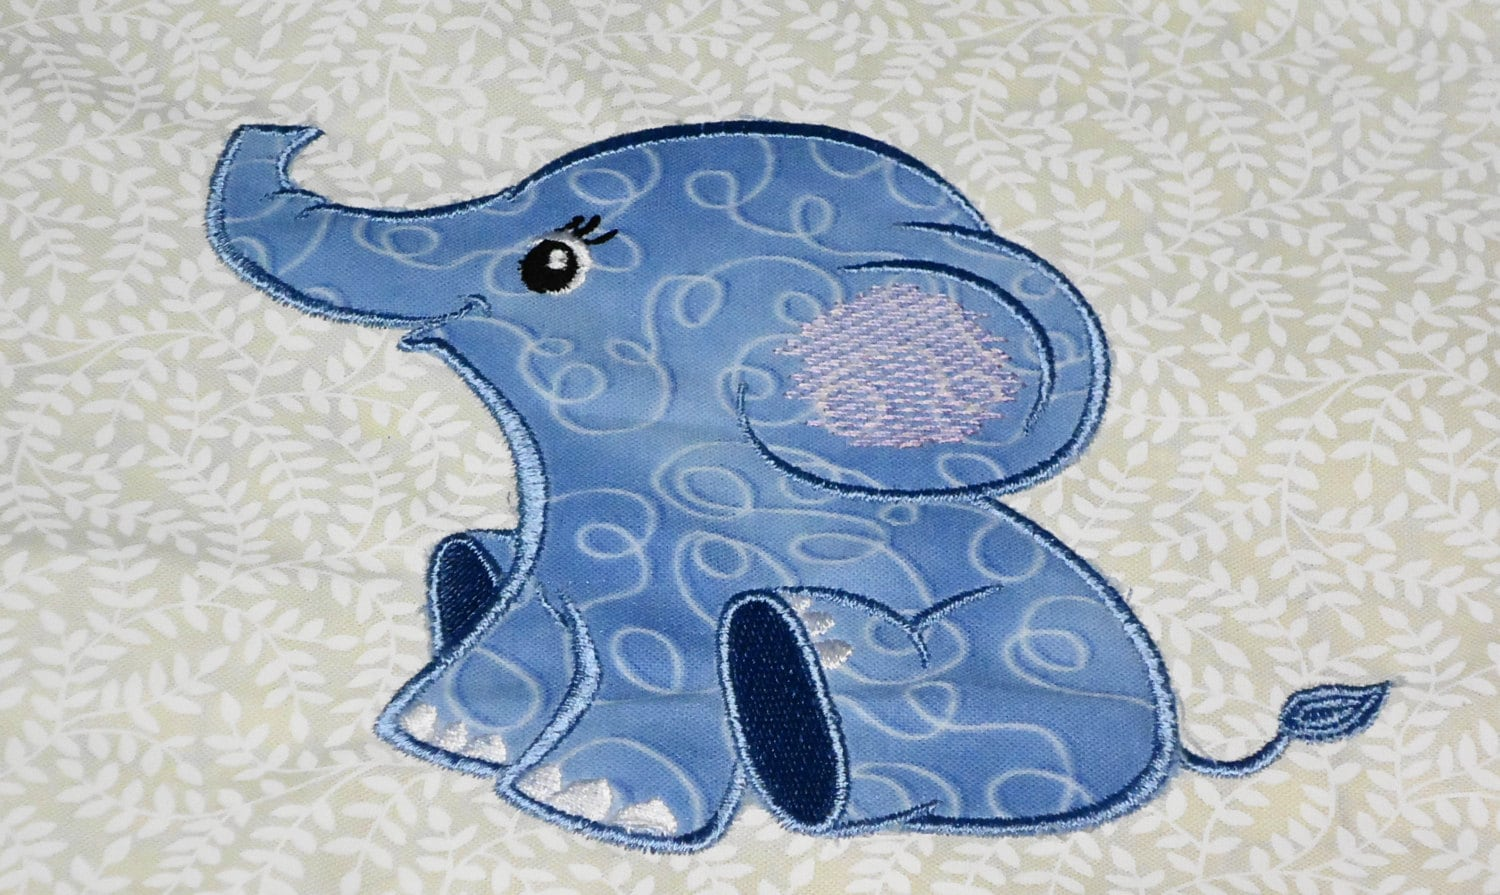 Baby elephant appliqué and filled embroidery design for